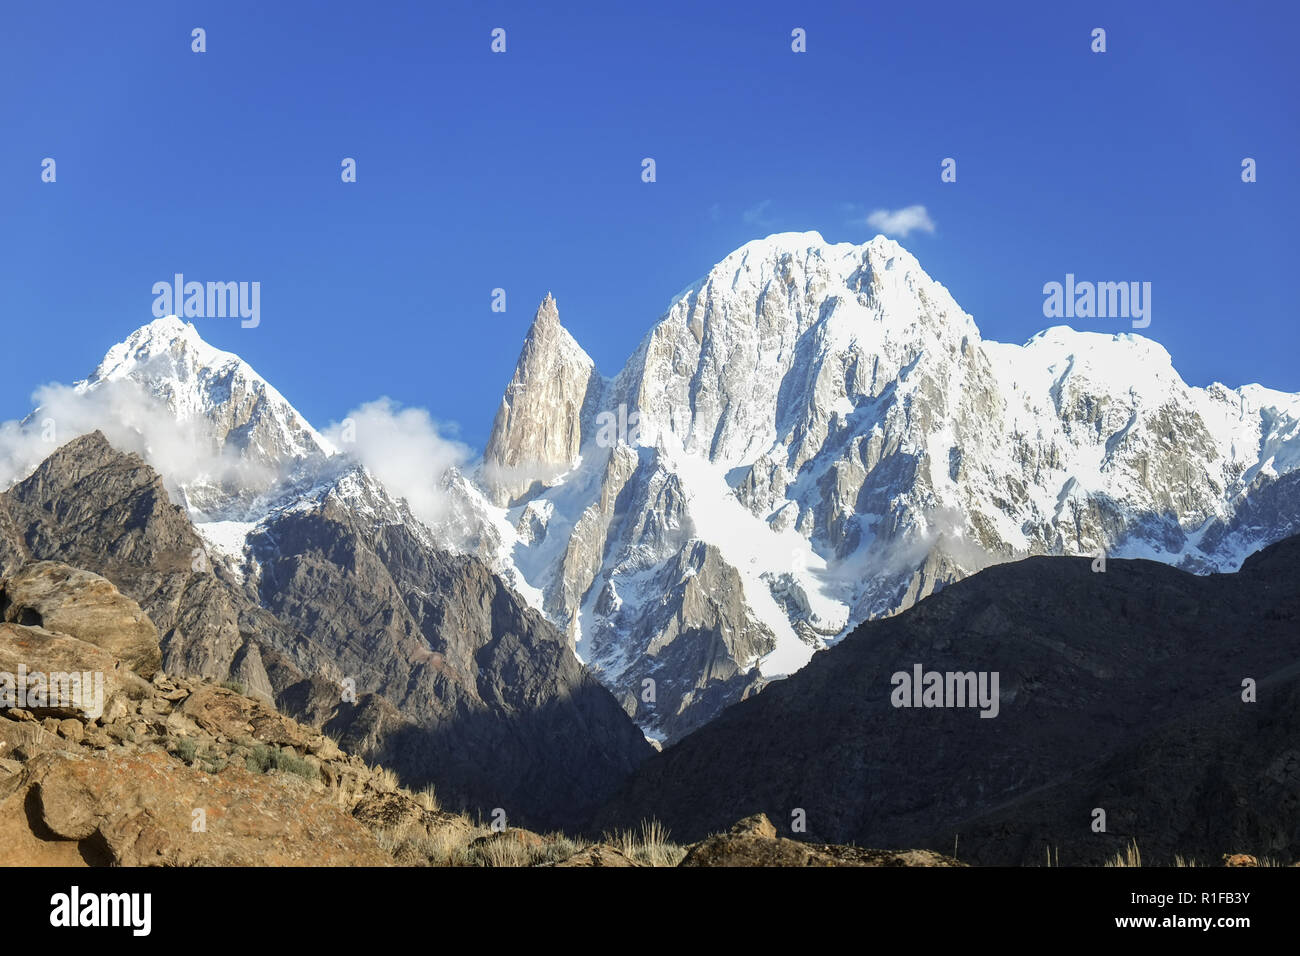 Lady finger and Hunza peak with snow capped. Hunza valley, Gilgit-Baltistan, Pakistan. - Stock Image